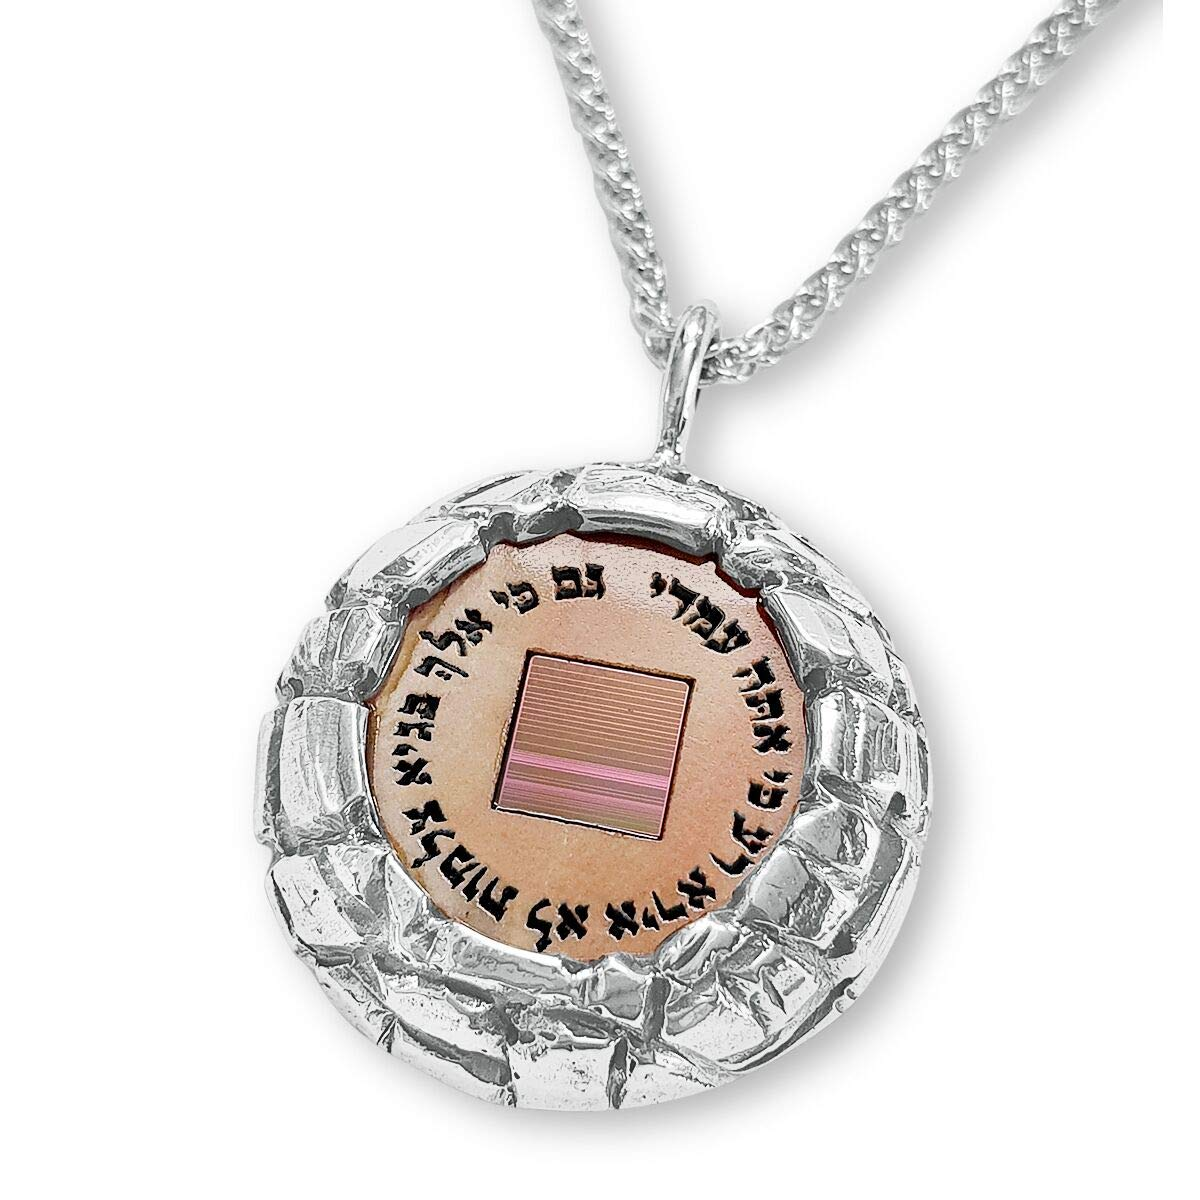 Sterling Silver Nano Bible Charm Jerusalem Stone Biblical Verse Pendant,Song of Songs Hebrew Love Necklace World/'s Smallest Bible Jewelry